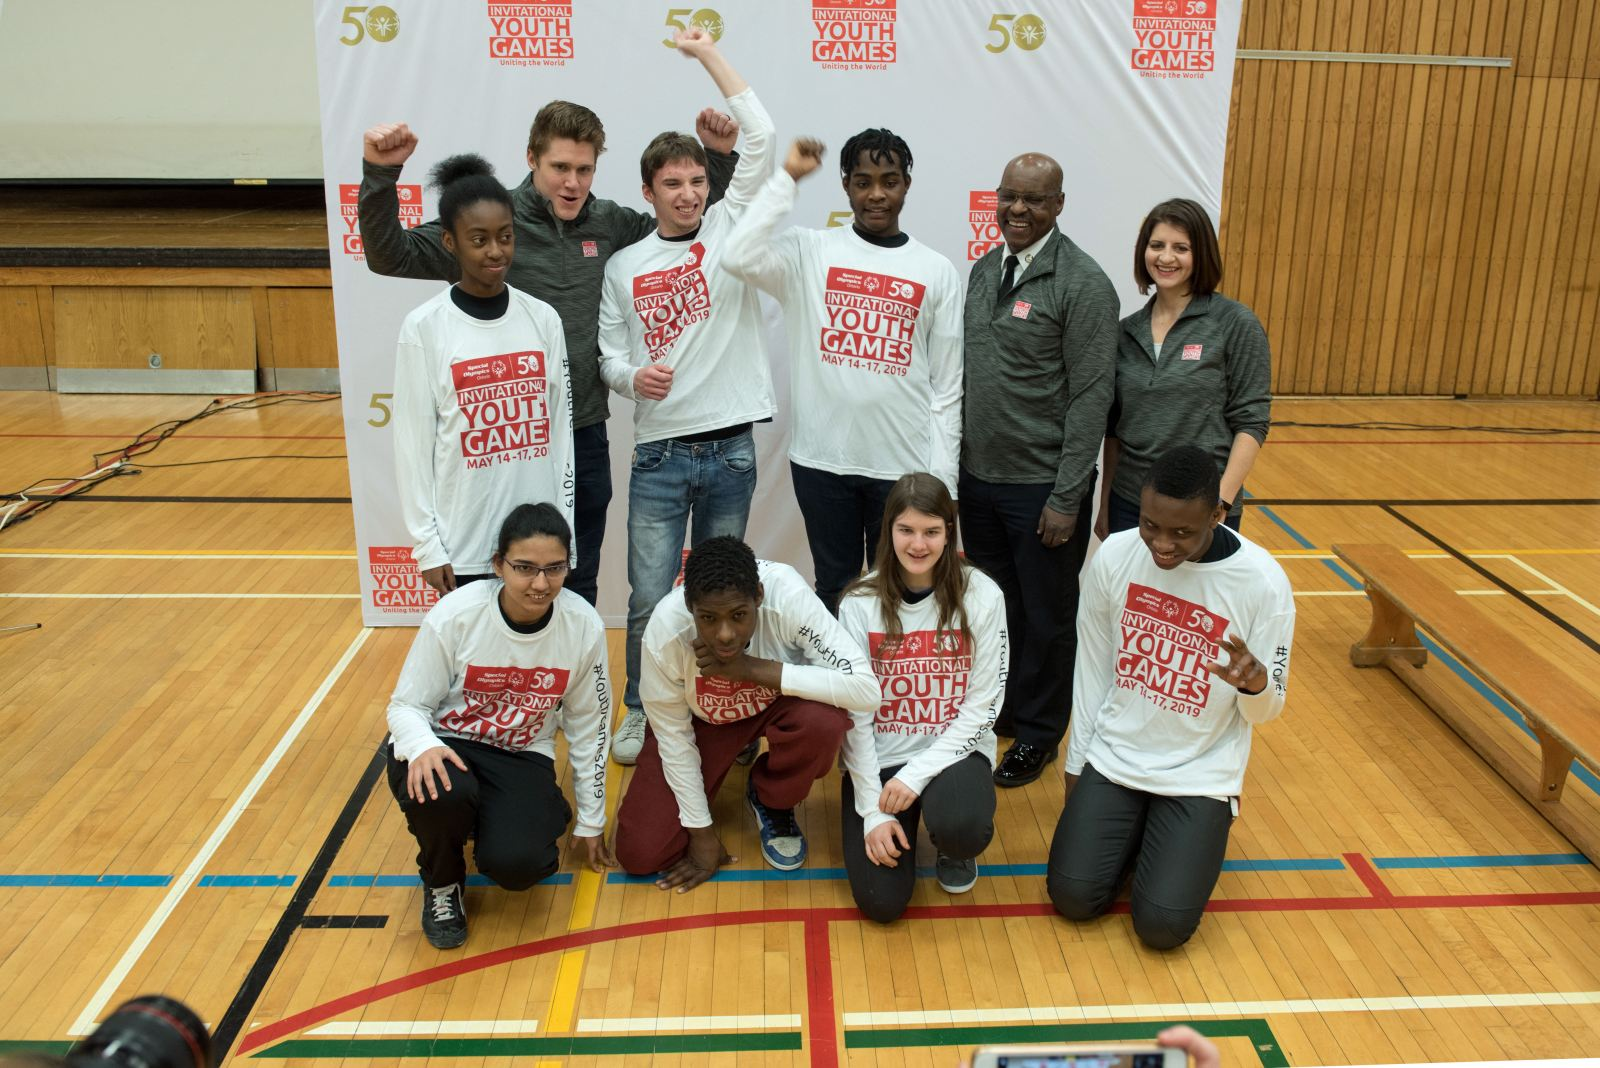 7 Students and 3 adults posing in front of a branded backdrop for the Invitational Youth Games